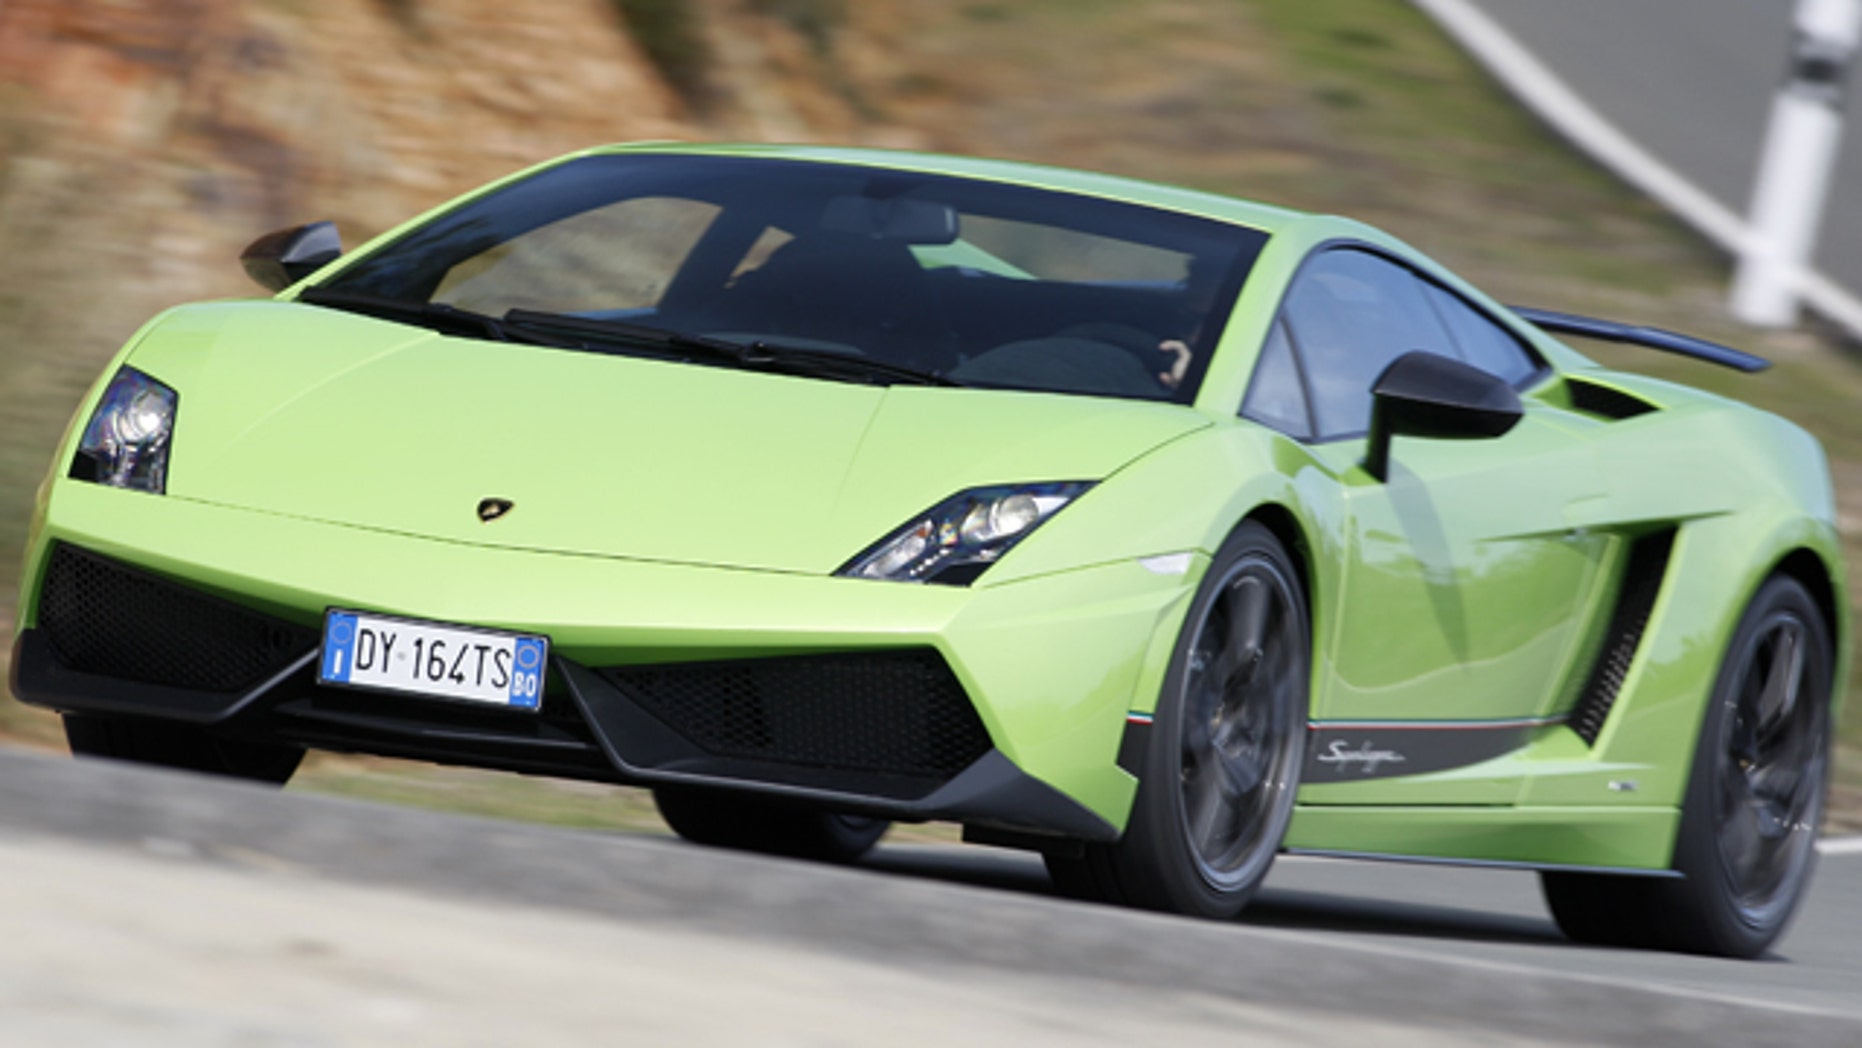 2011 Lamborghini Gallardo Lp570 4 Superleggera Fox News